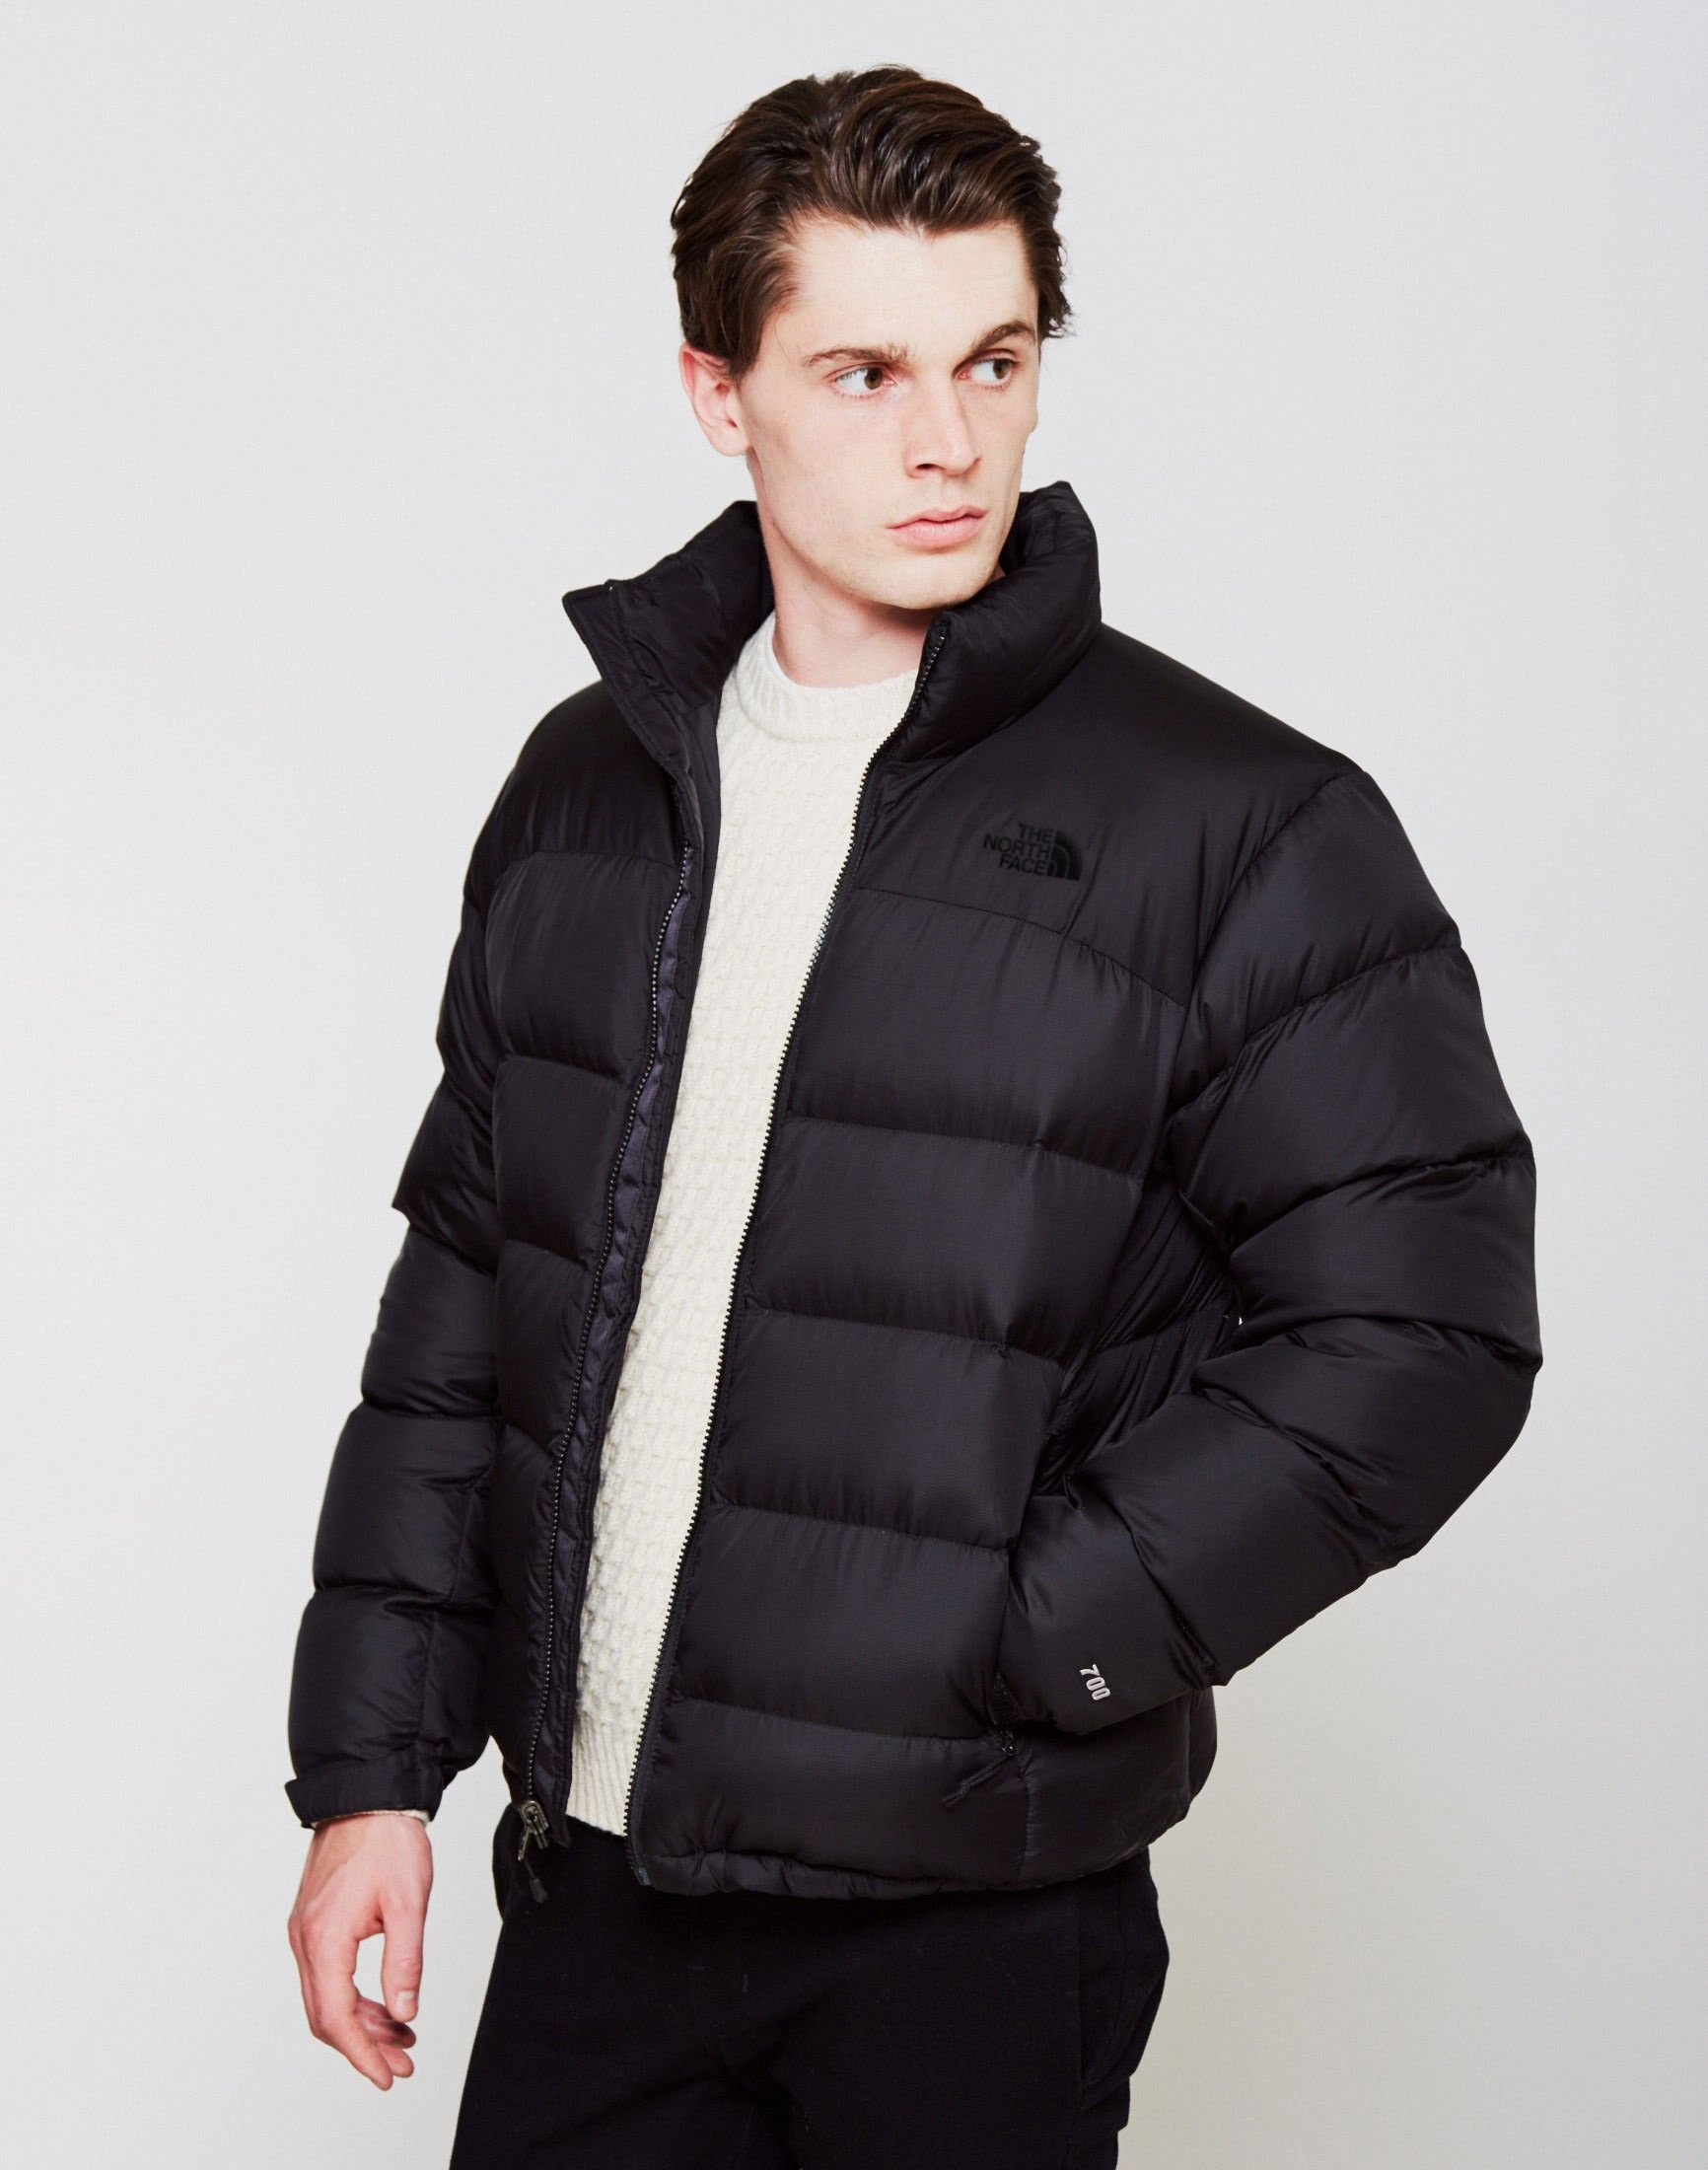 Shop For The North Face Nuptse 2 Jacket Find The Latest Menswear Online At The Idle Man North Face Jacket Mens Mens Casual Outfits Mens Jackets [ 2200 x 1732 Pixel ]